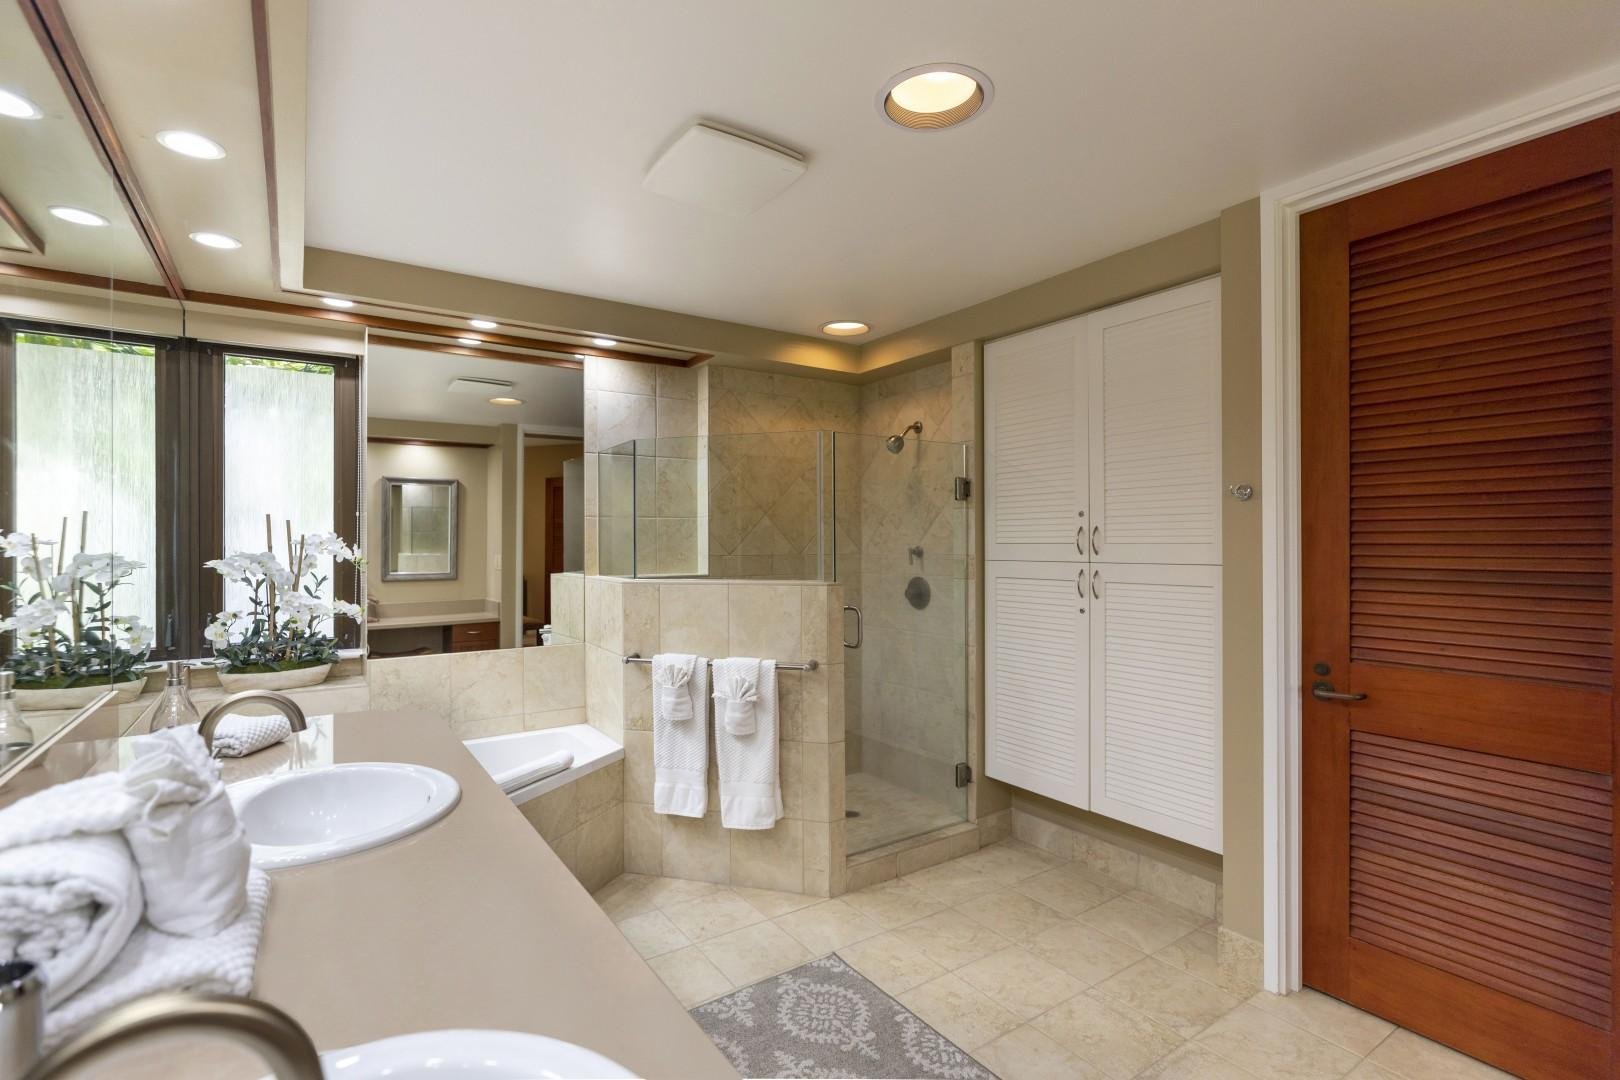 The master bath offers a walk-in shower and double vanities.